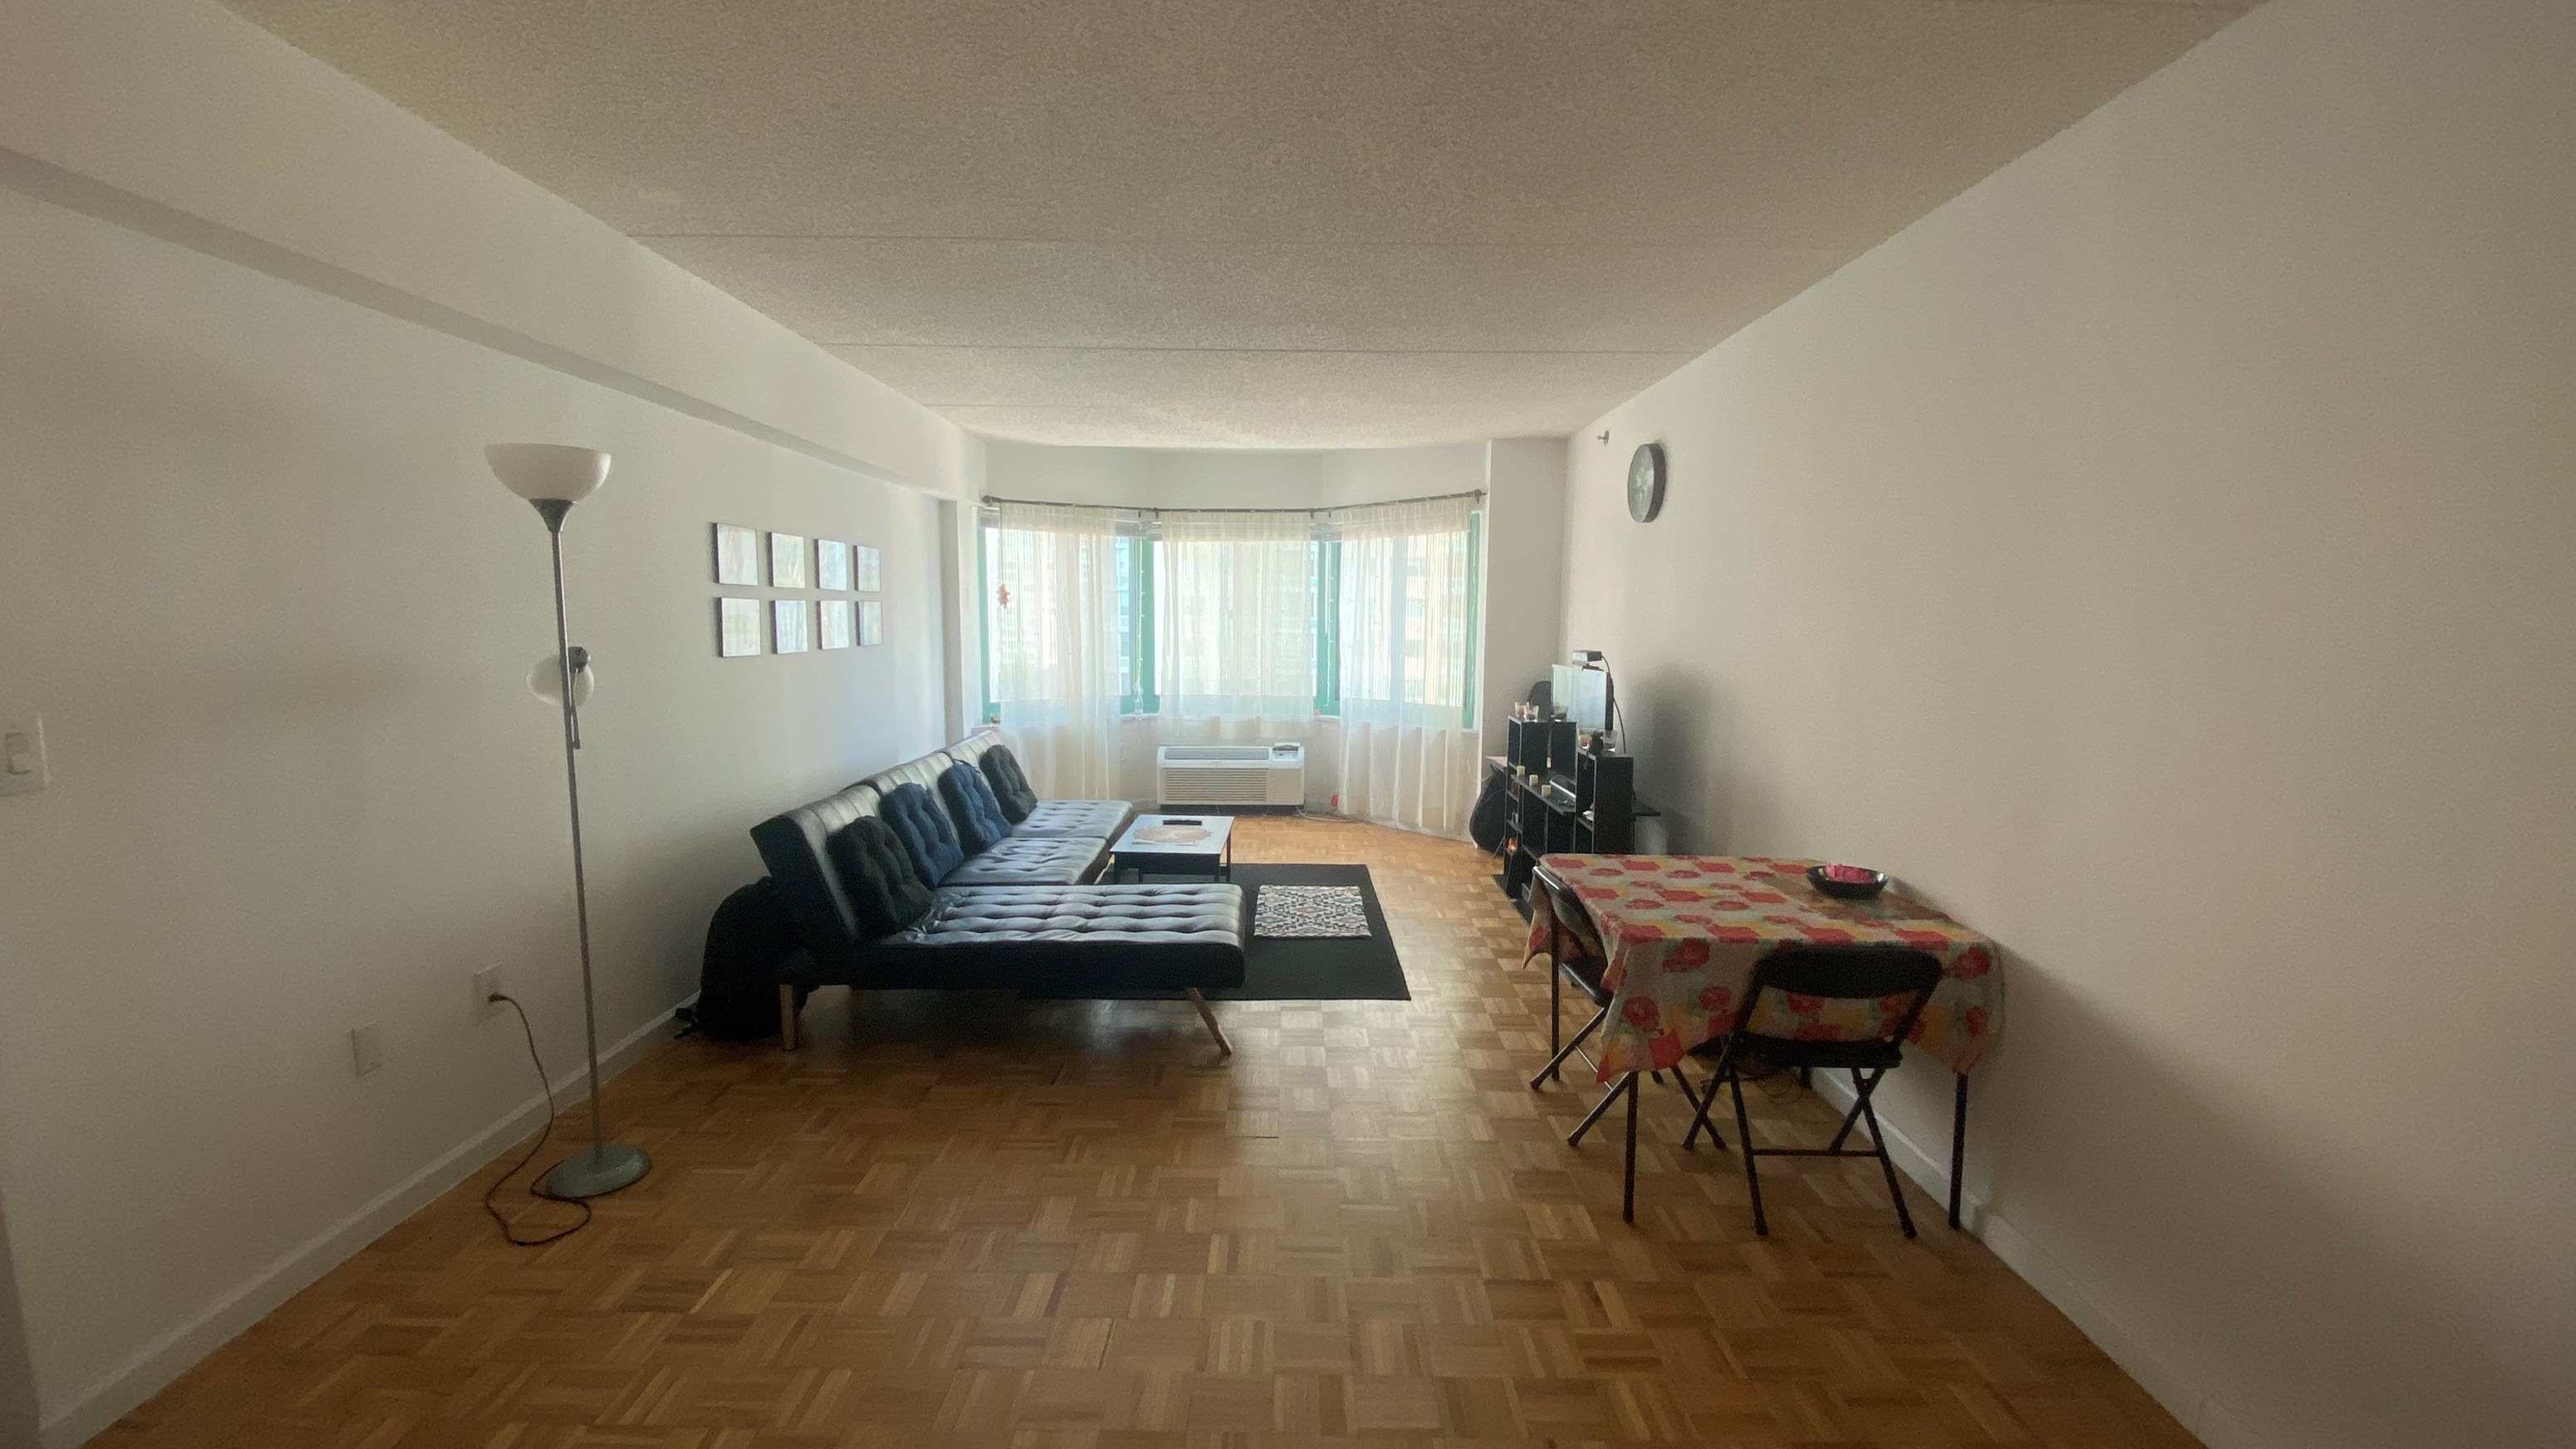 1 Bedroom Apartments For Rent By Owner In Brooklyn Ny | 1 ...